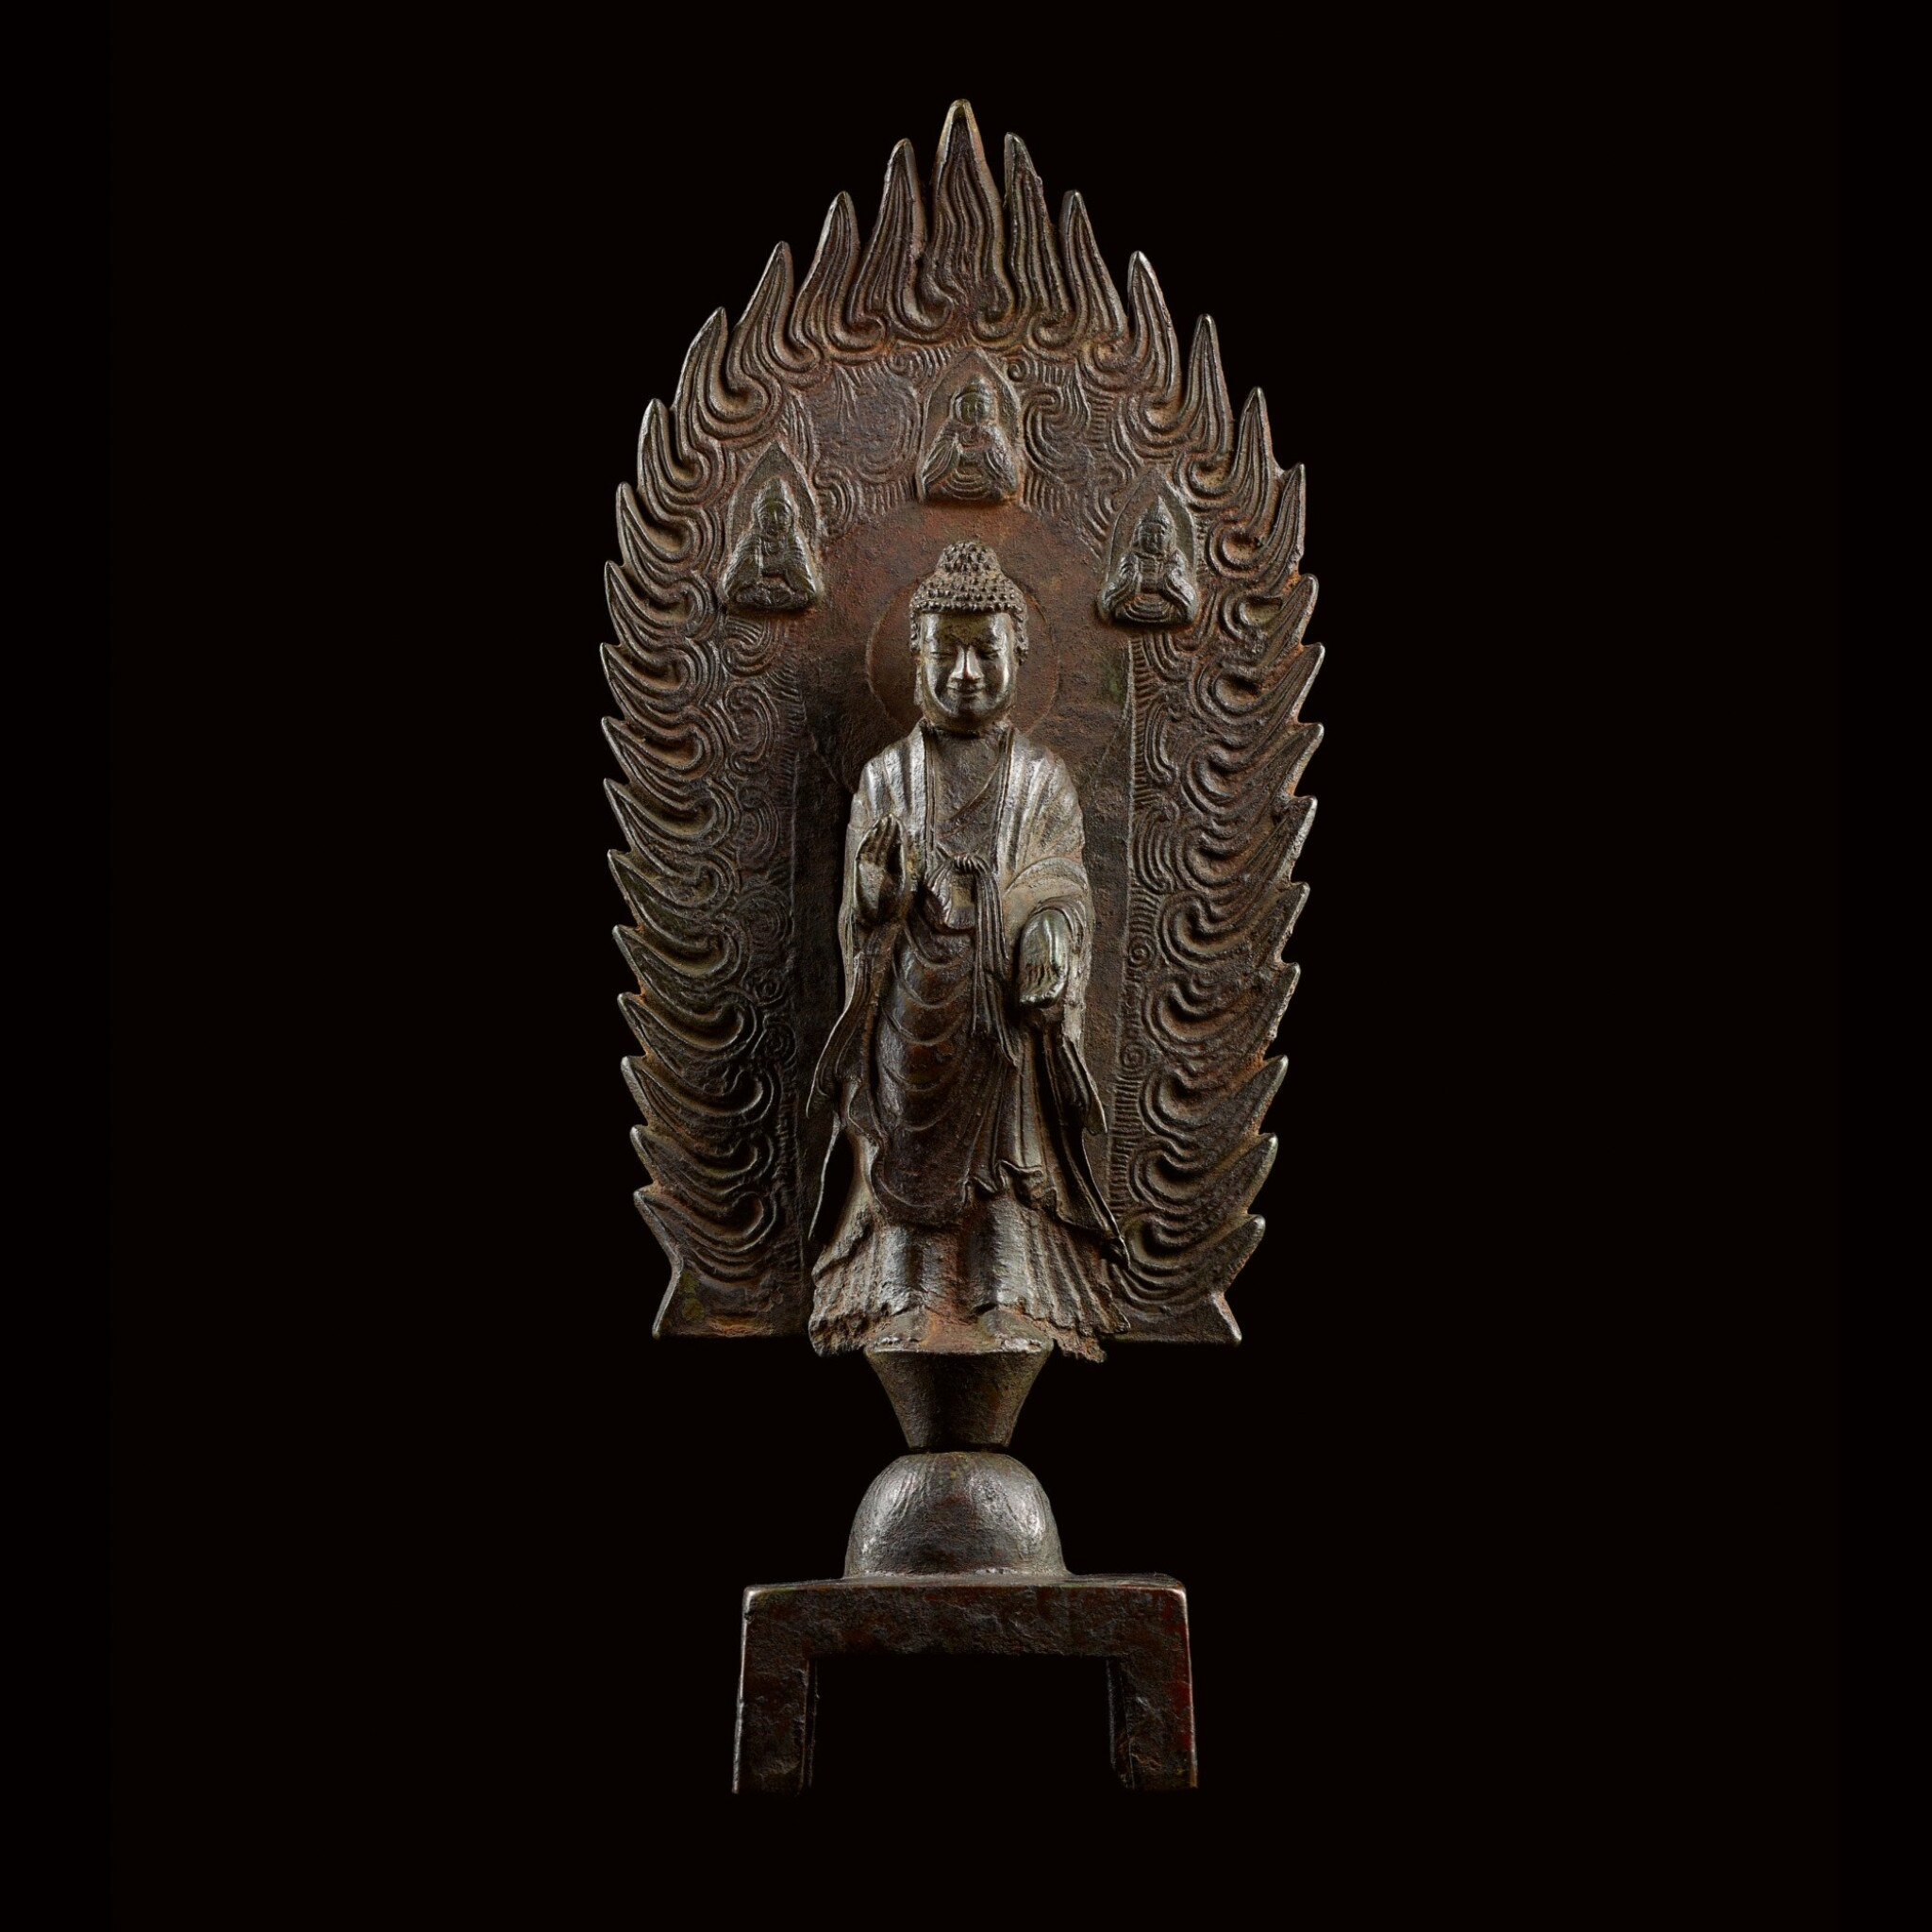 View full screen - View 1 of Lot 76. A MAGNIFICENT, LARGE AND EXTREMELY RARE BRONZE VOTIVE FIGURE OFMAITREYA NORTHERN WEI DYNASTY, DATED 3RD YEAR OF THE JINGMING PERIOD (IN ACCORDANCE WITH 502) | 北魏 銅彌勒佛立像 《景明三年四月二十日》款.